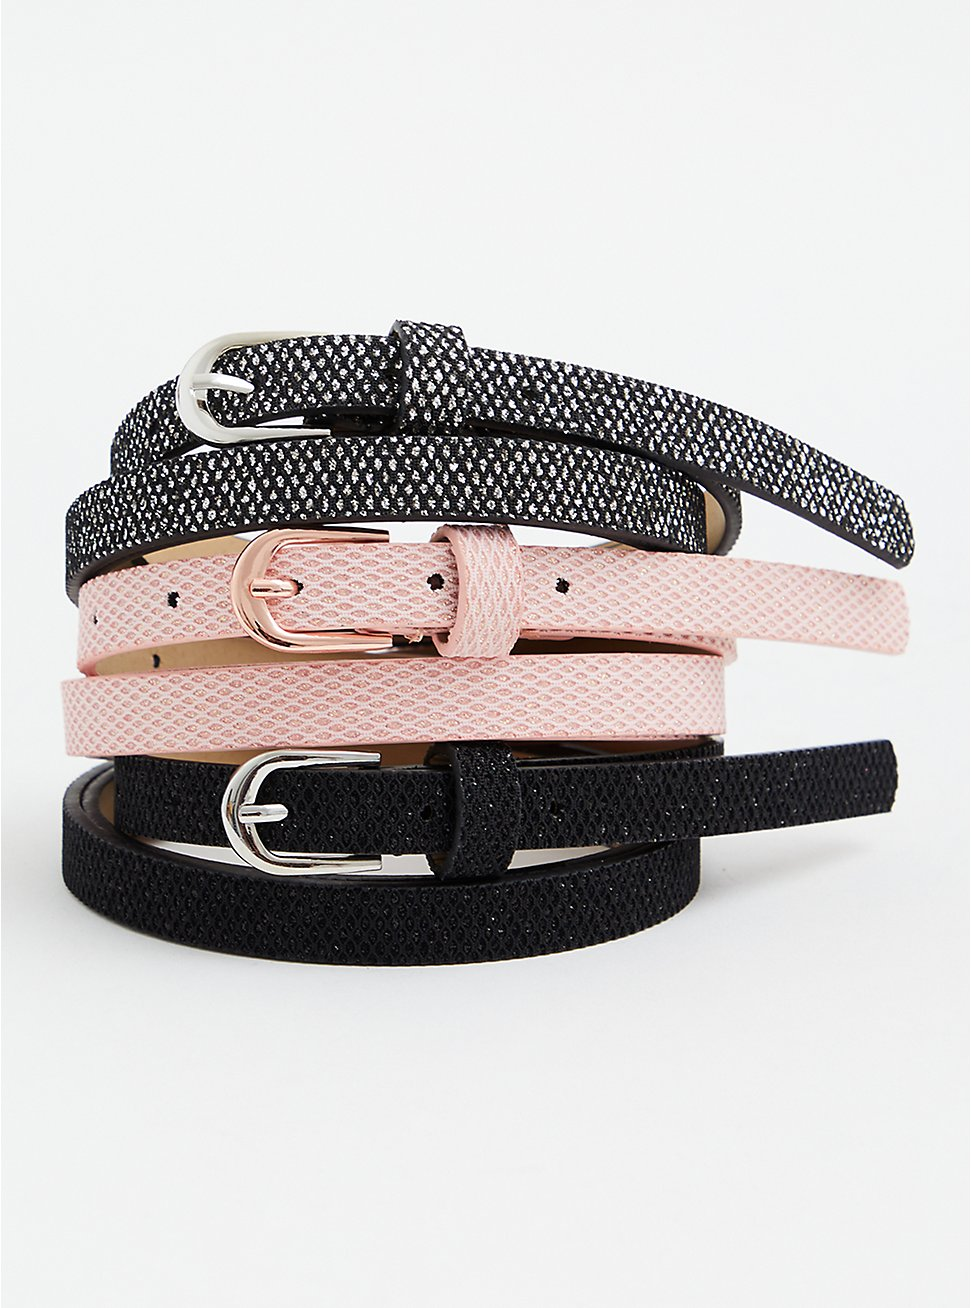 Light Pink & Black Faux Leather Skinny Belt Pack - Pack of 3, MULTI, hi-res